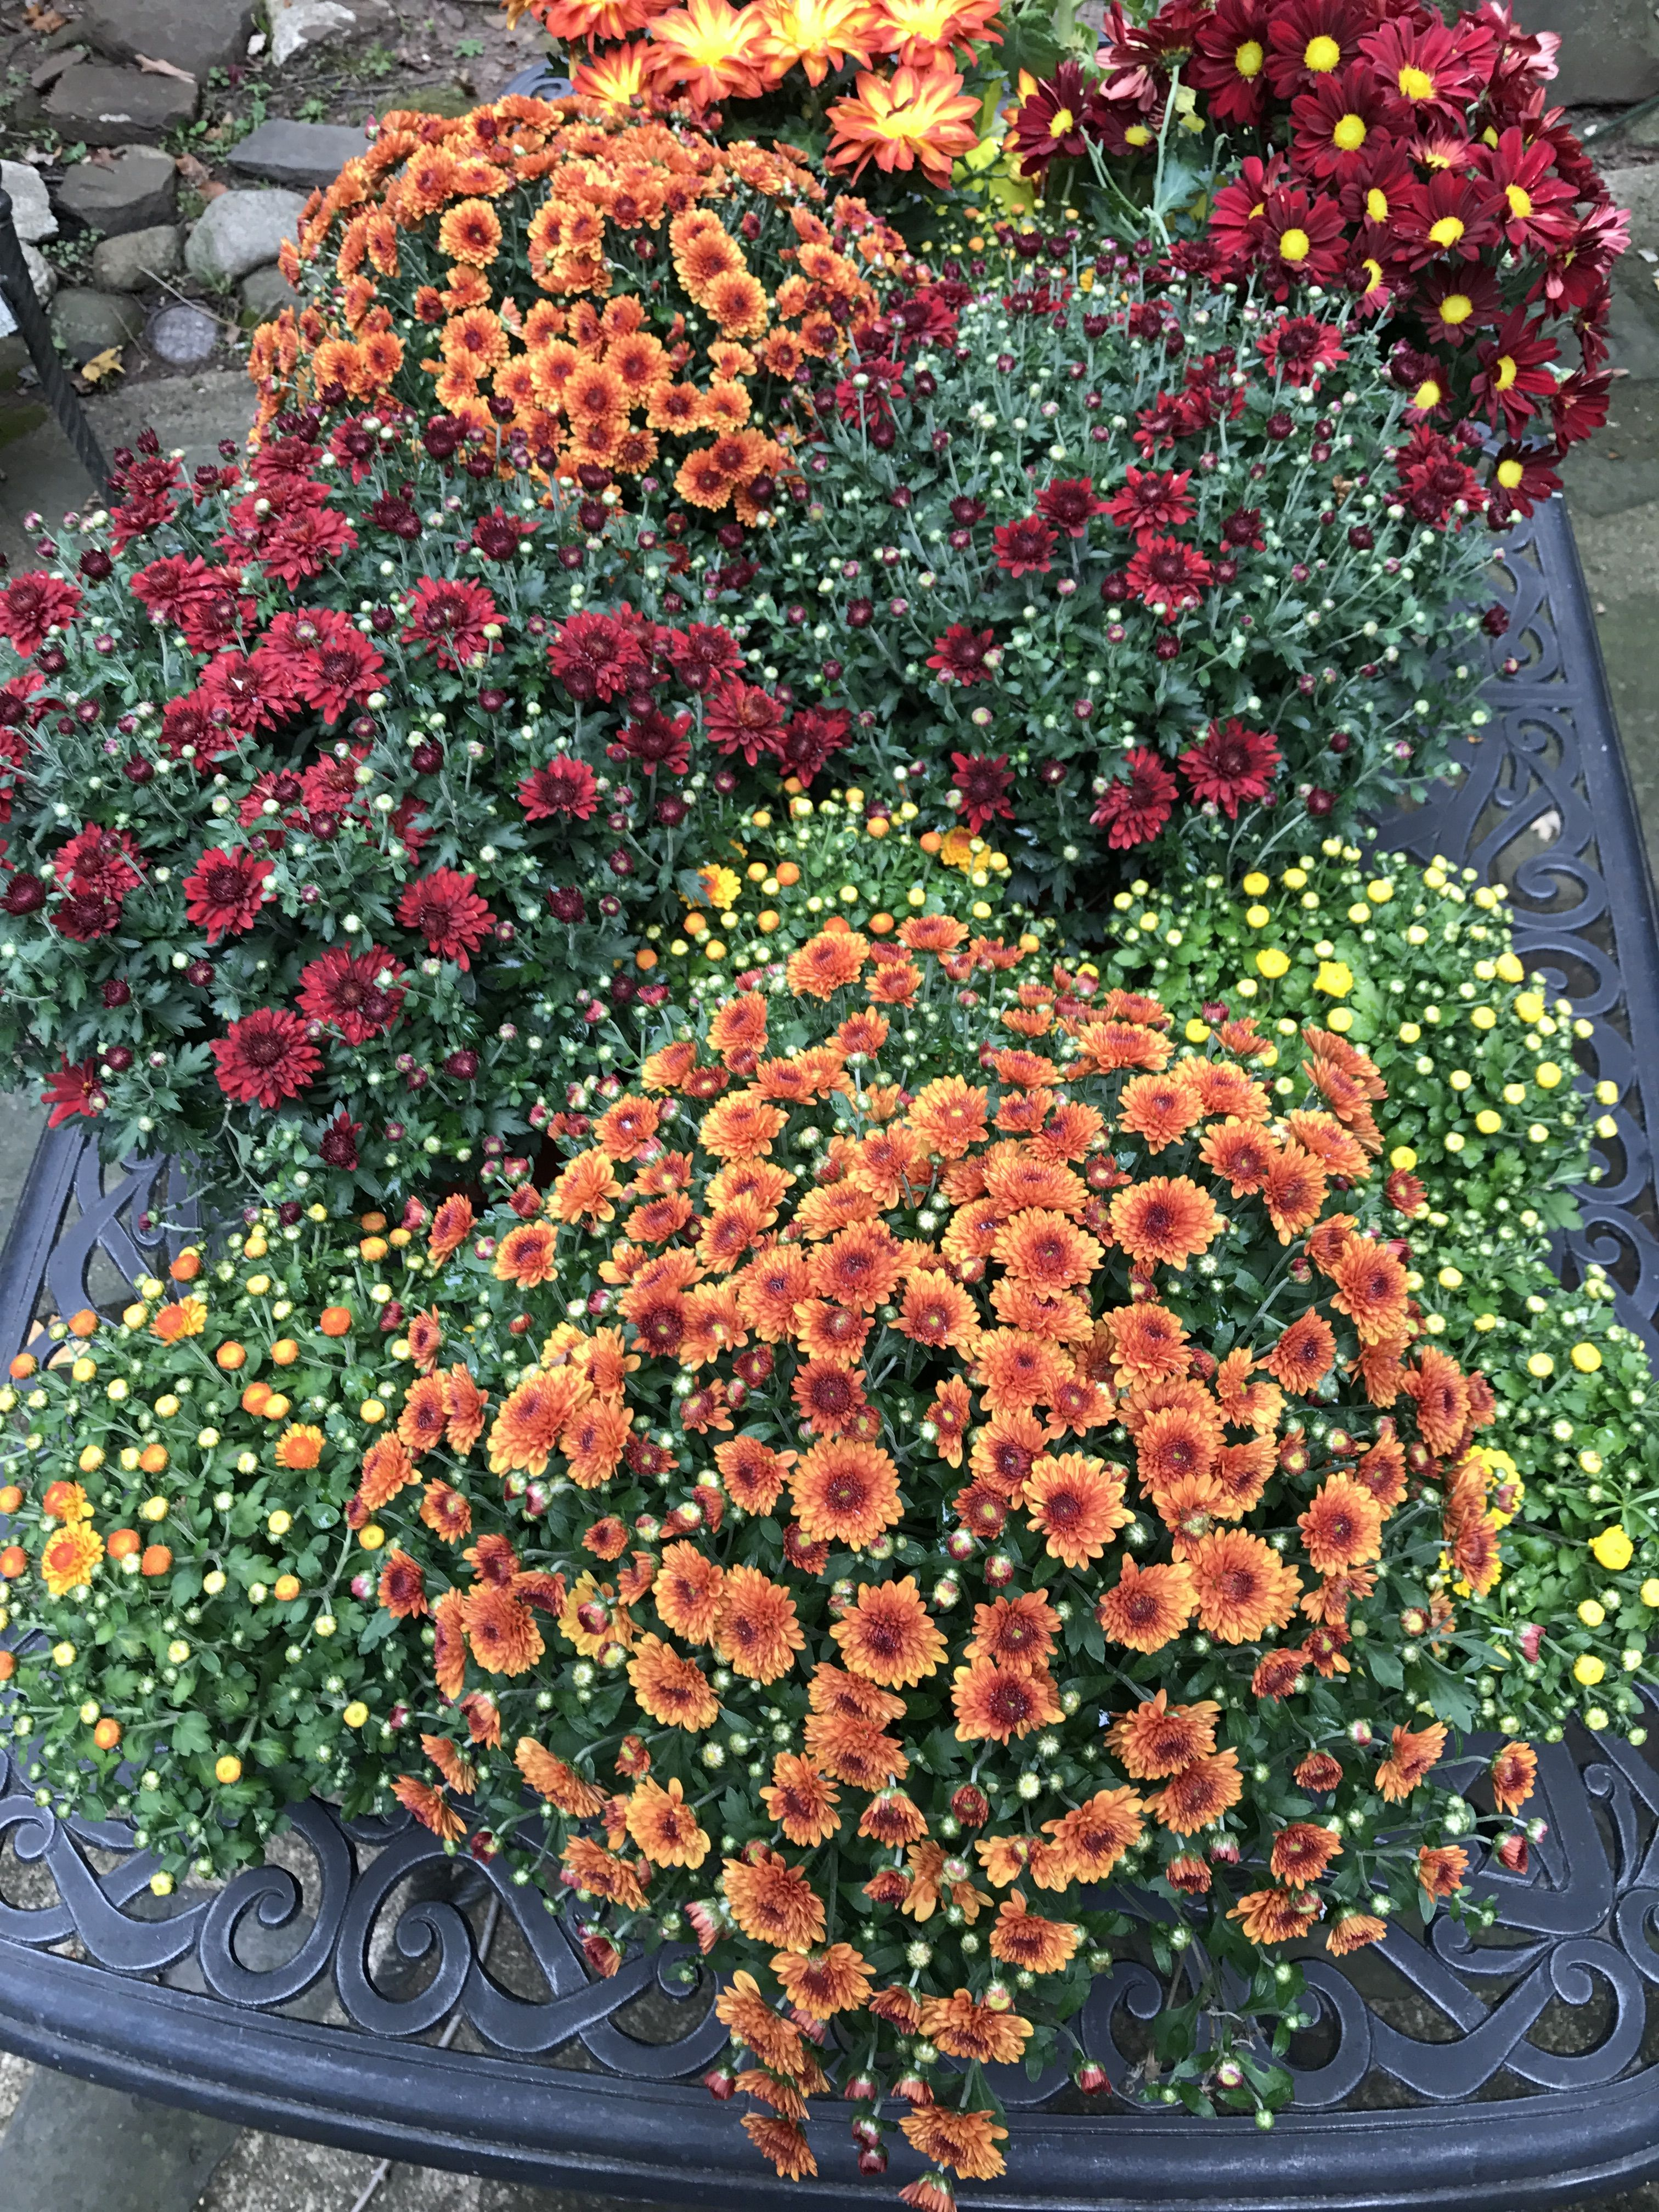 Fall is just around the corner when the mums start to